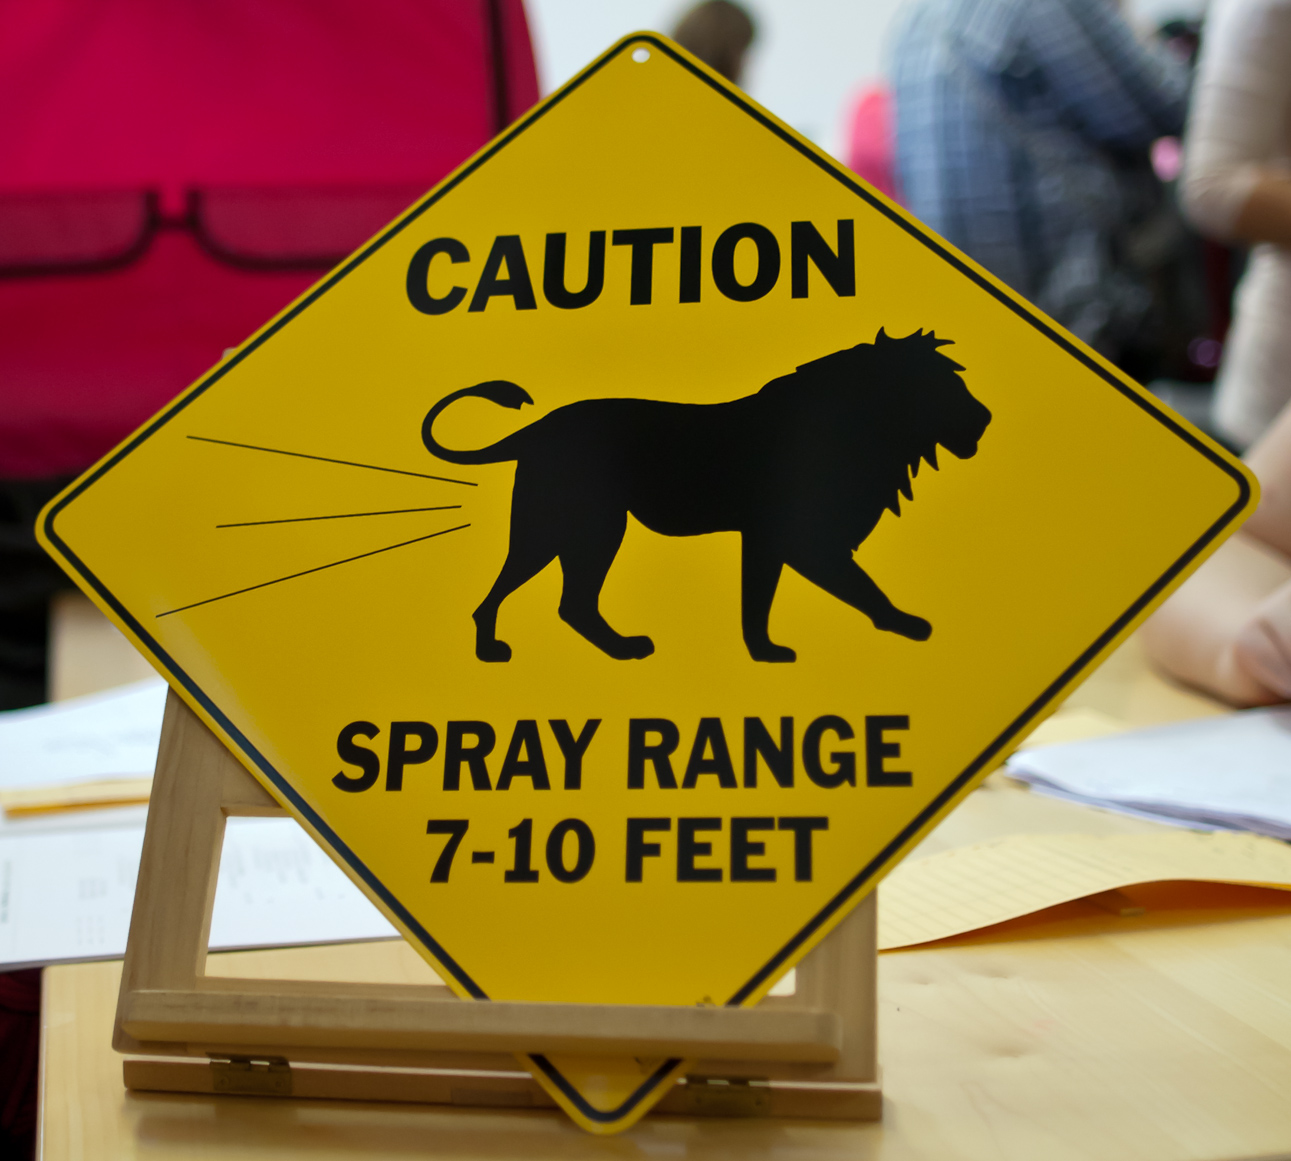 Caution: spray range 7-10 feet, kuva 180083, 17.9.2011